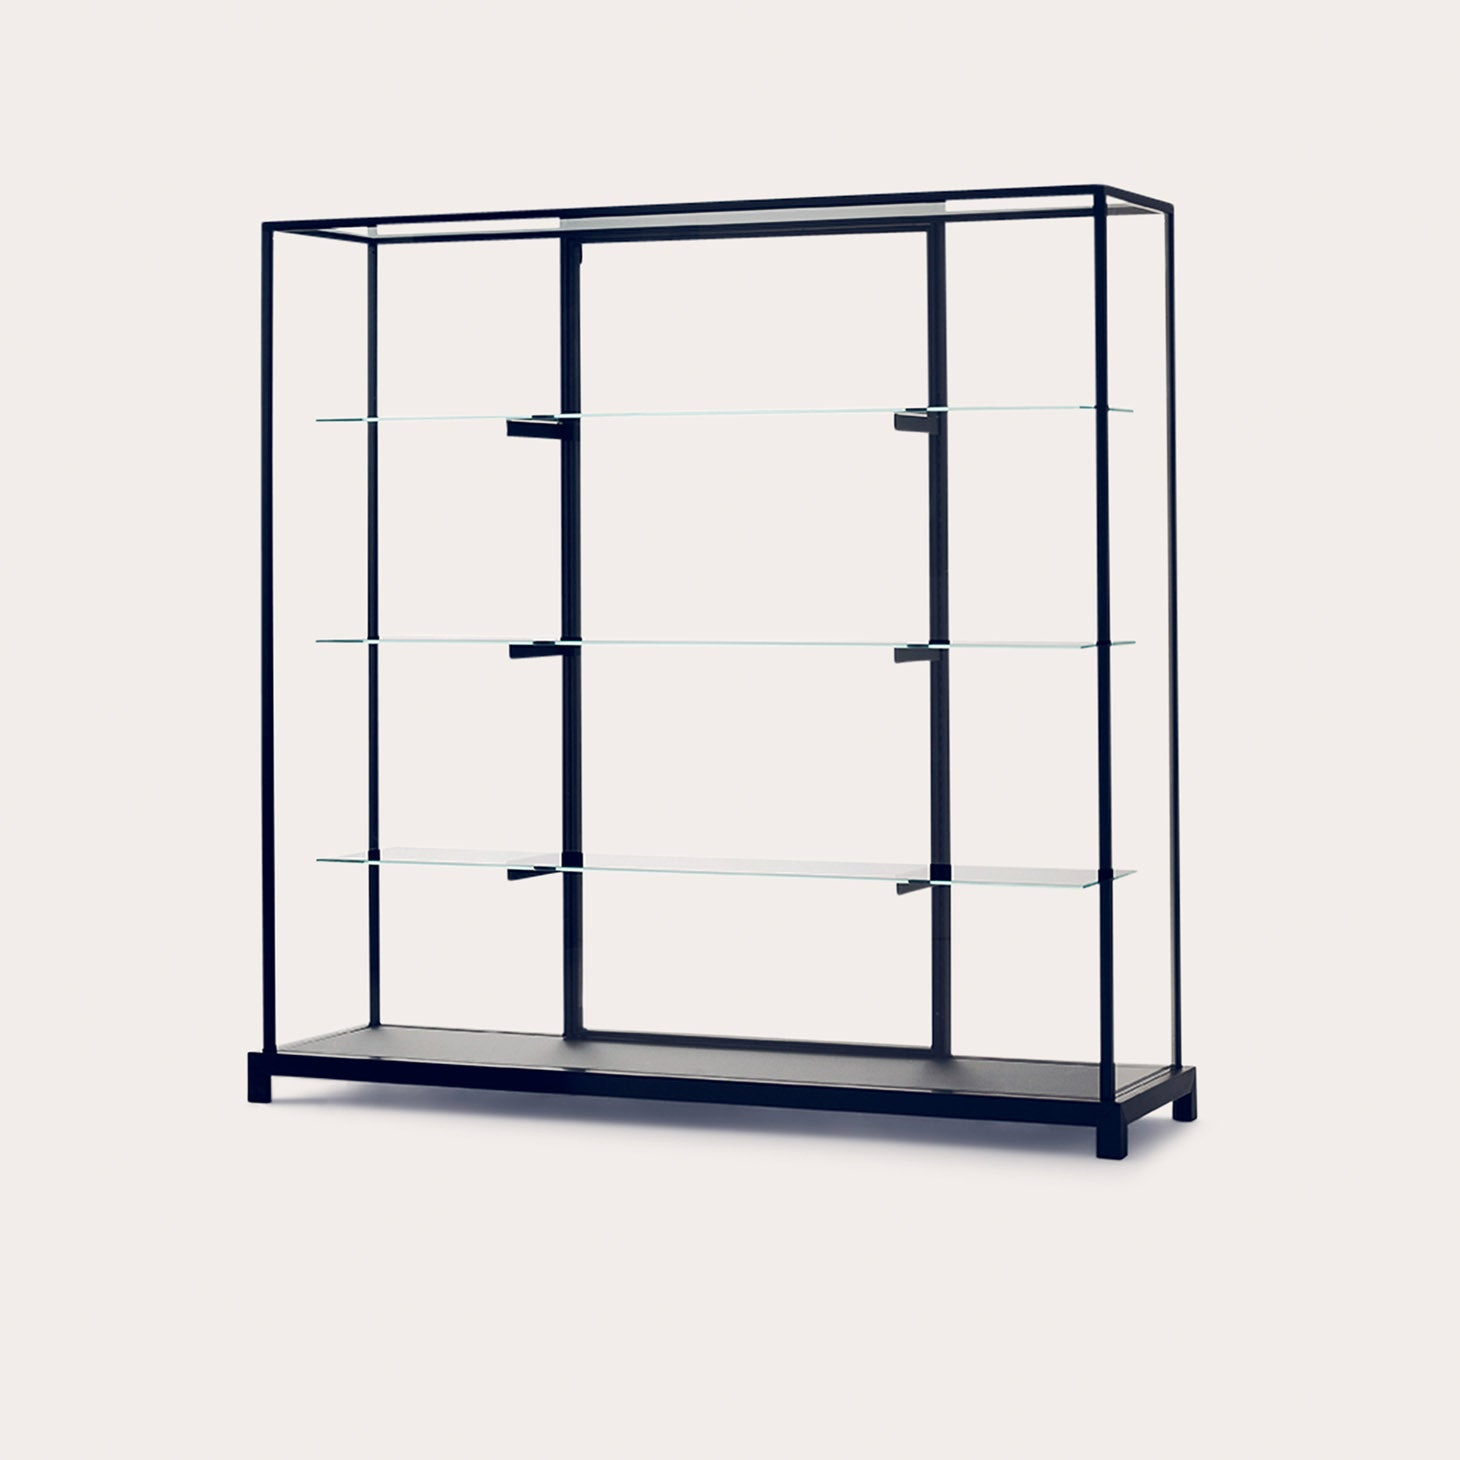 Wunderkammer Storage Piero Lissoni Designer Furniture Sku: 288-220-10011